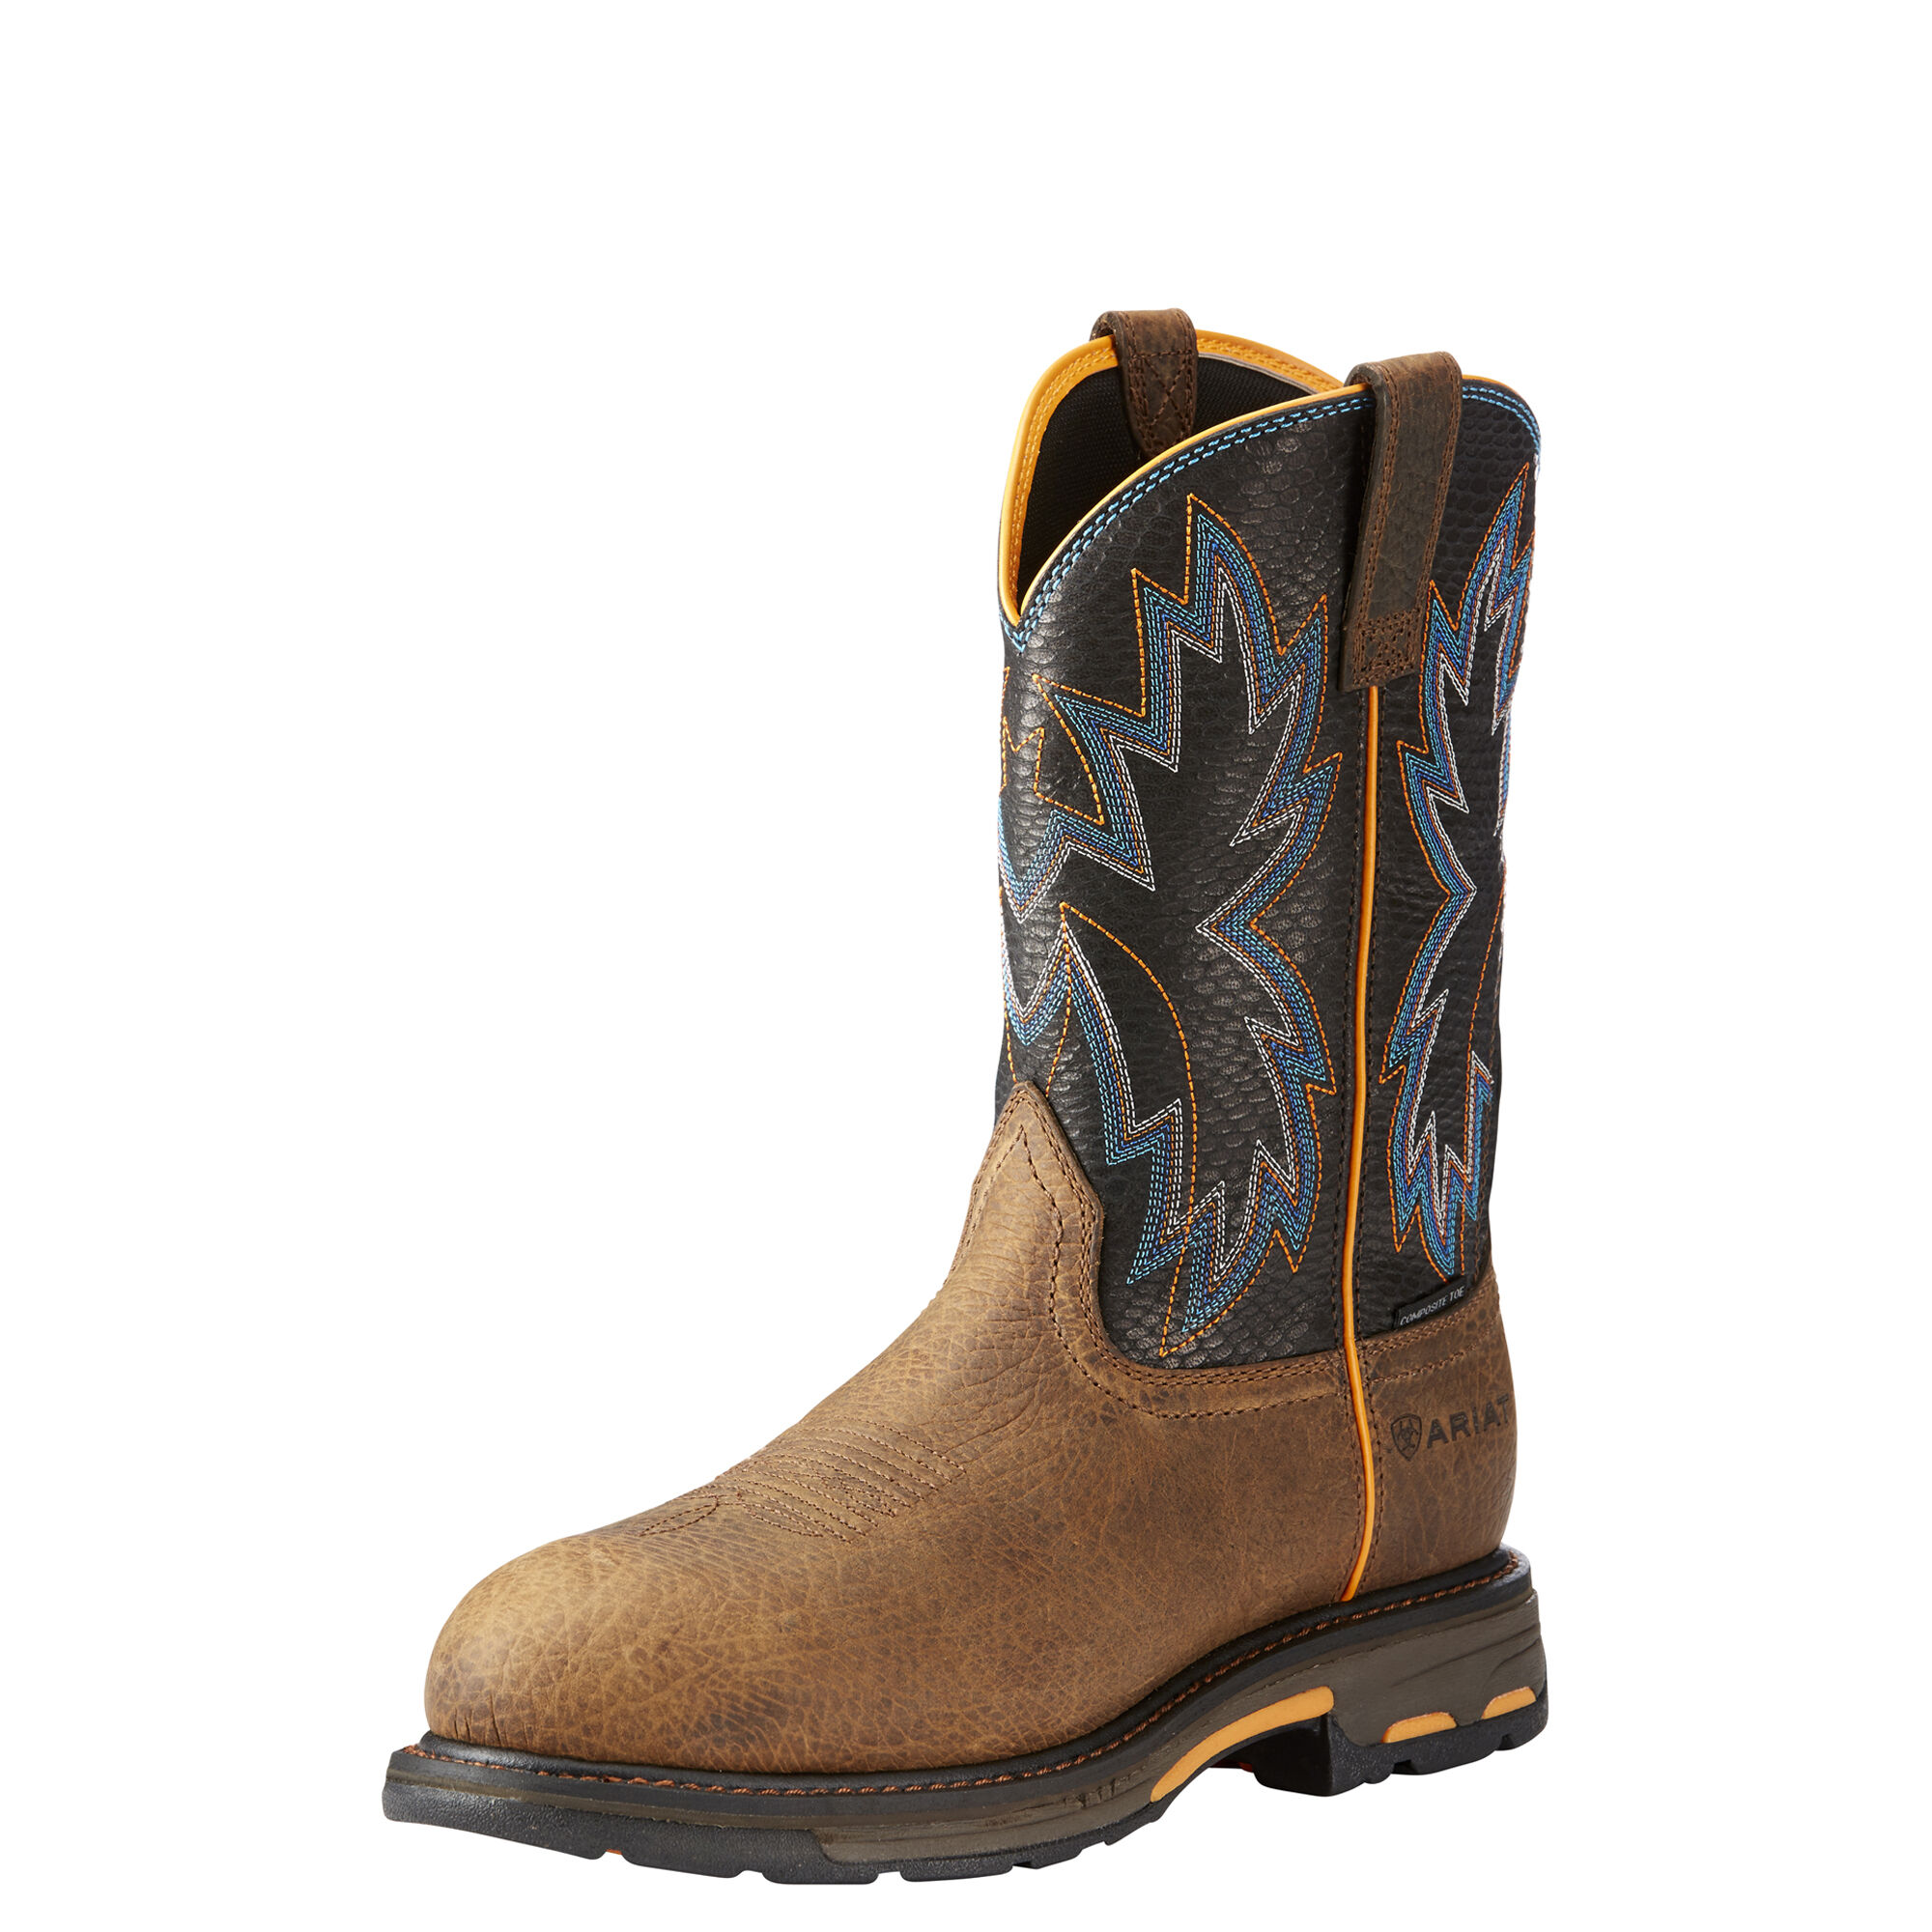 Men's Ariat Workhog Raptor Work Boot, Size: 14 D, Earth Leather